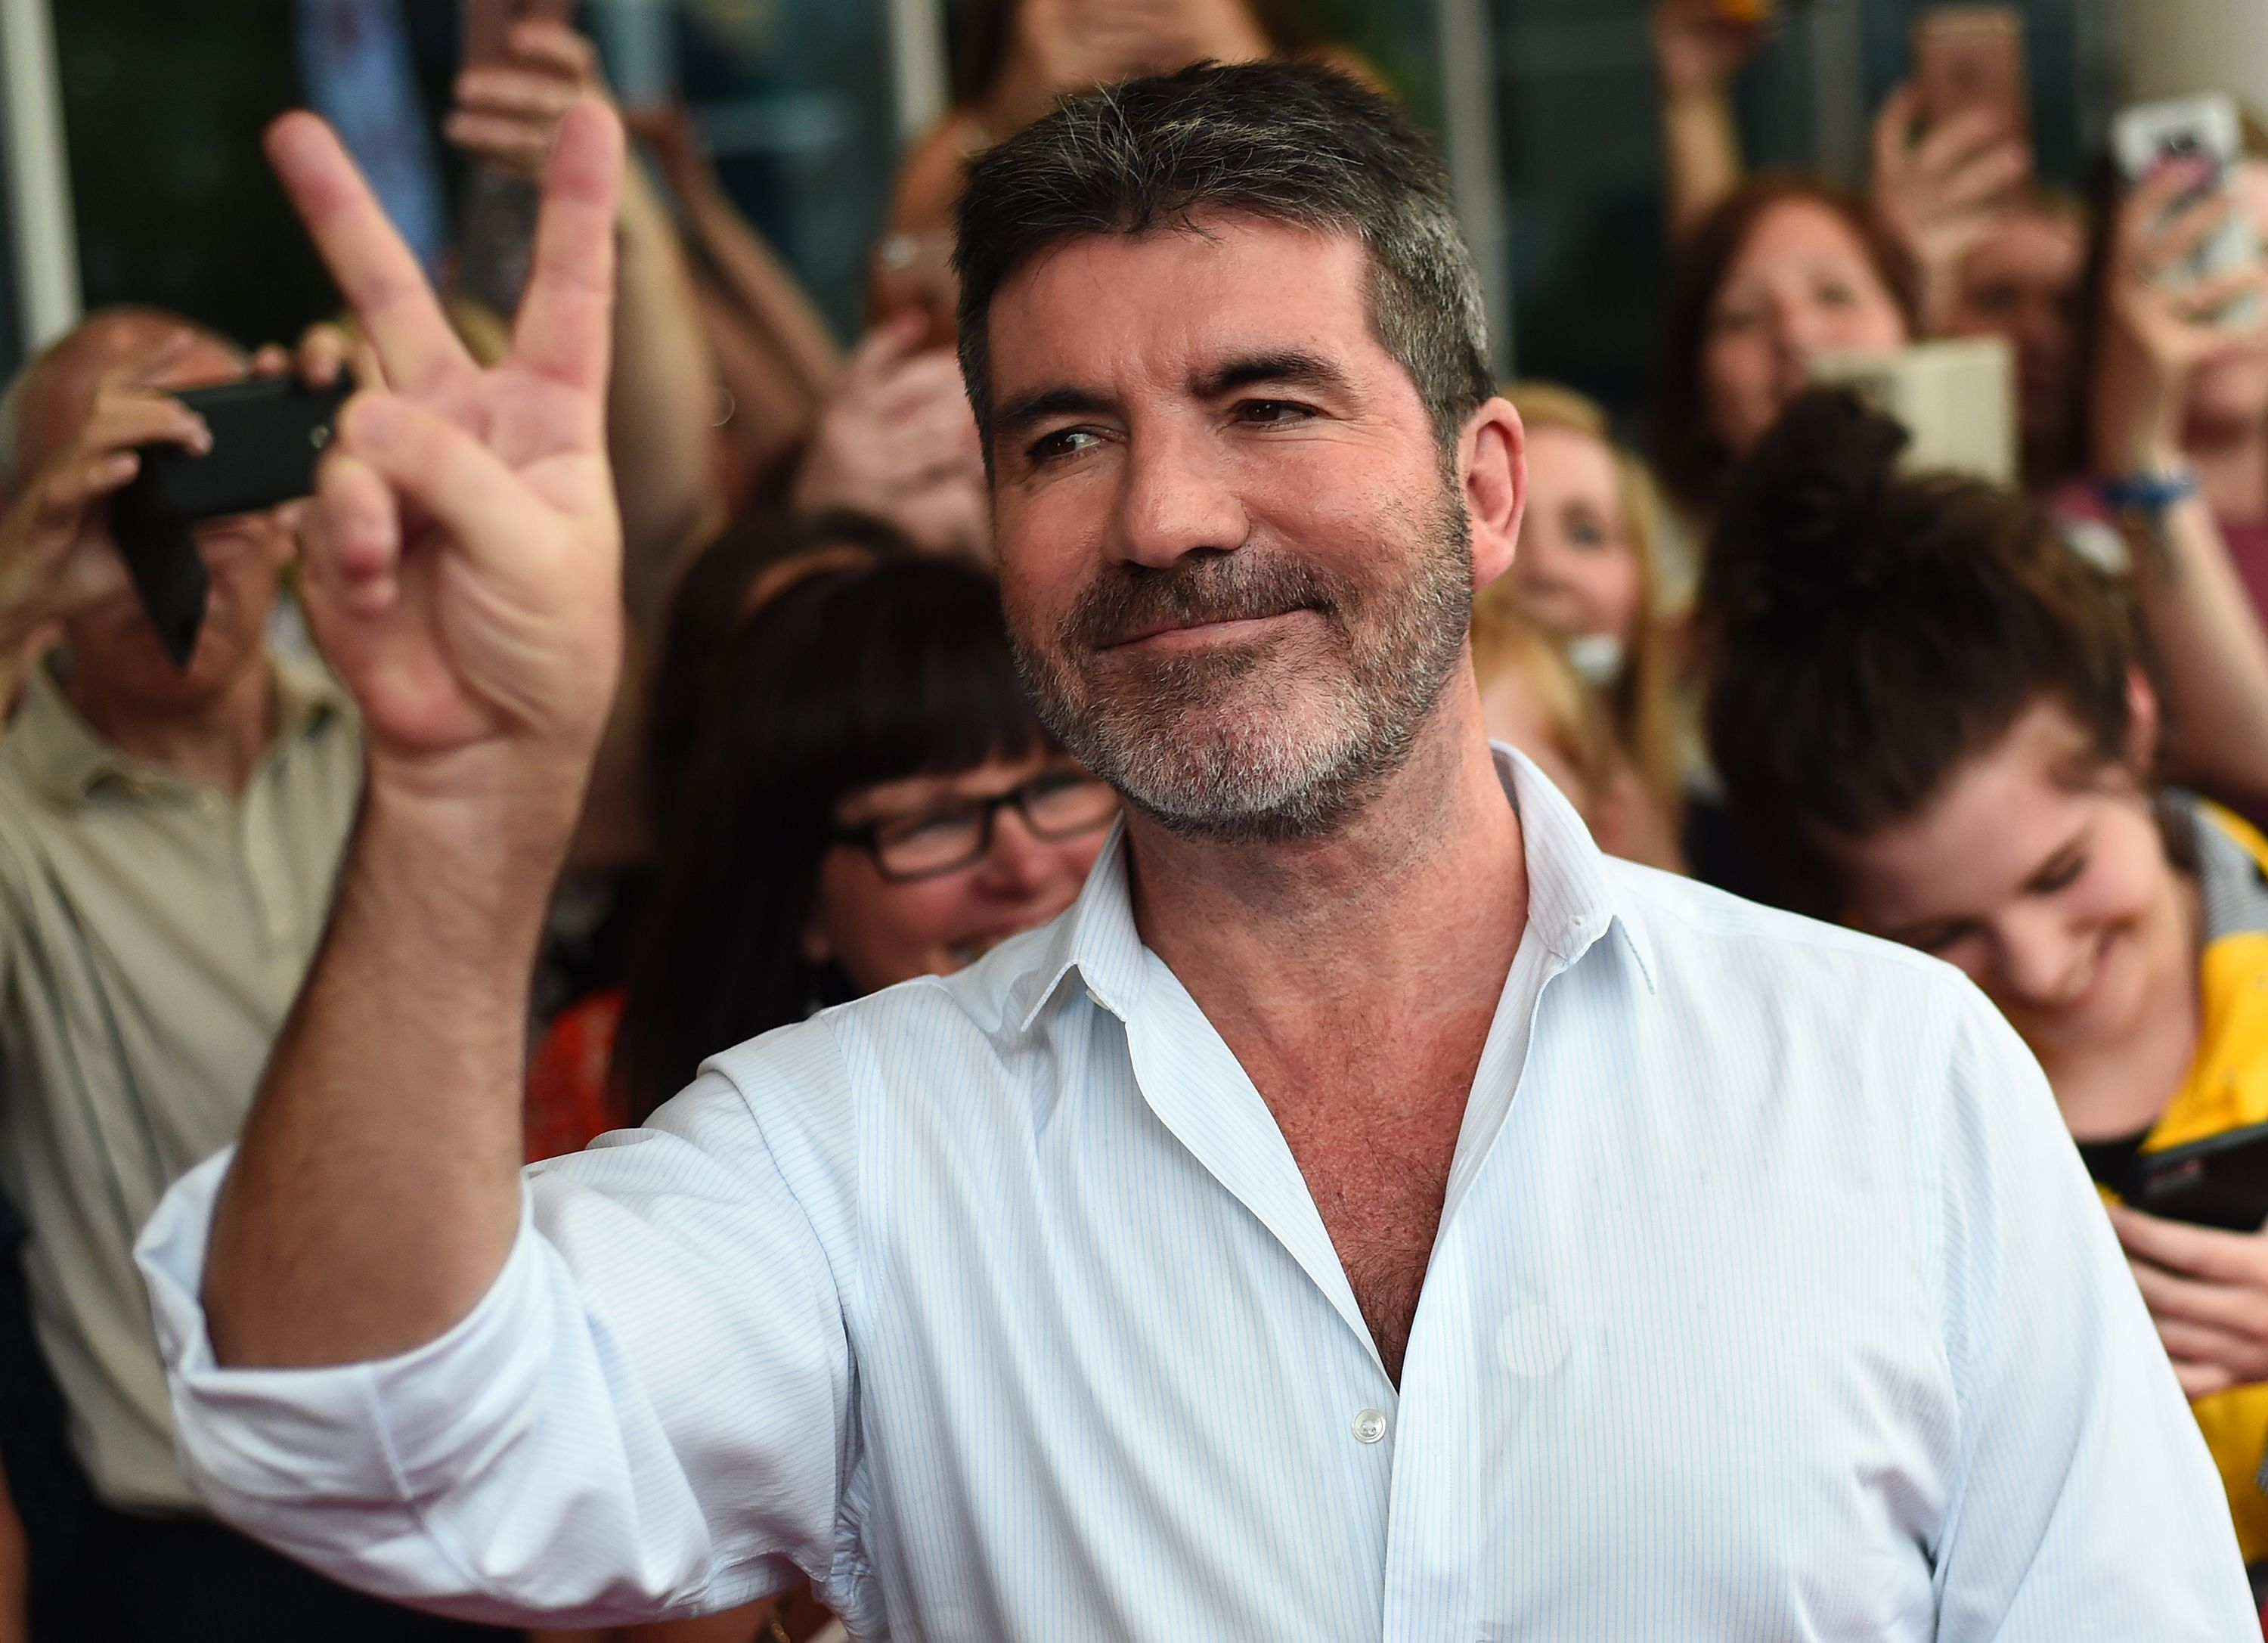 What Happened To Simon Cowell Where Is The Agt Judge At The Season 15 Finale In 2020